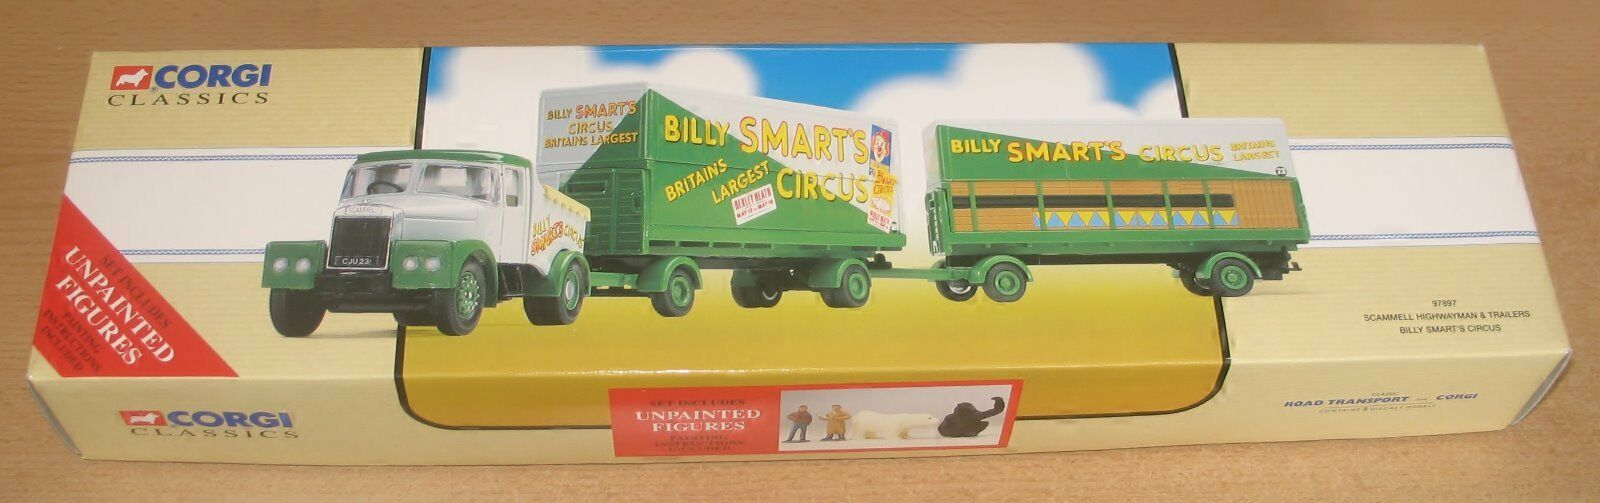 CORGI 97897 SCAMMELL HIGHWAYMAN & 2 TRAILERS 'BILLY SMART'S' LIMITED EDITION MIB